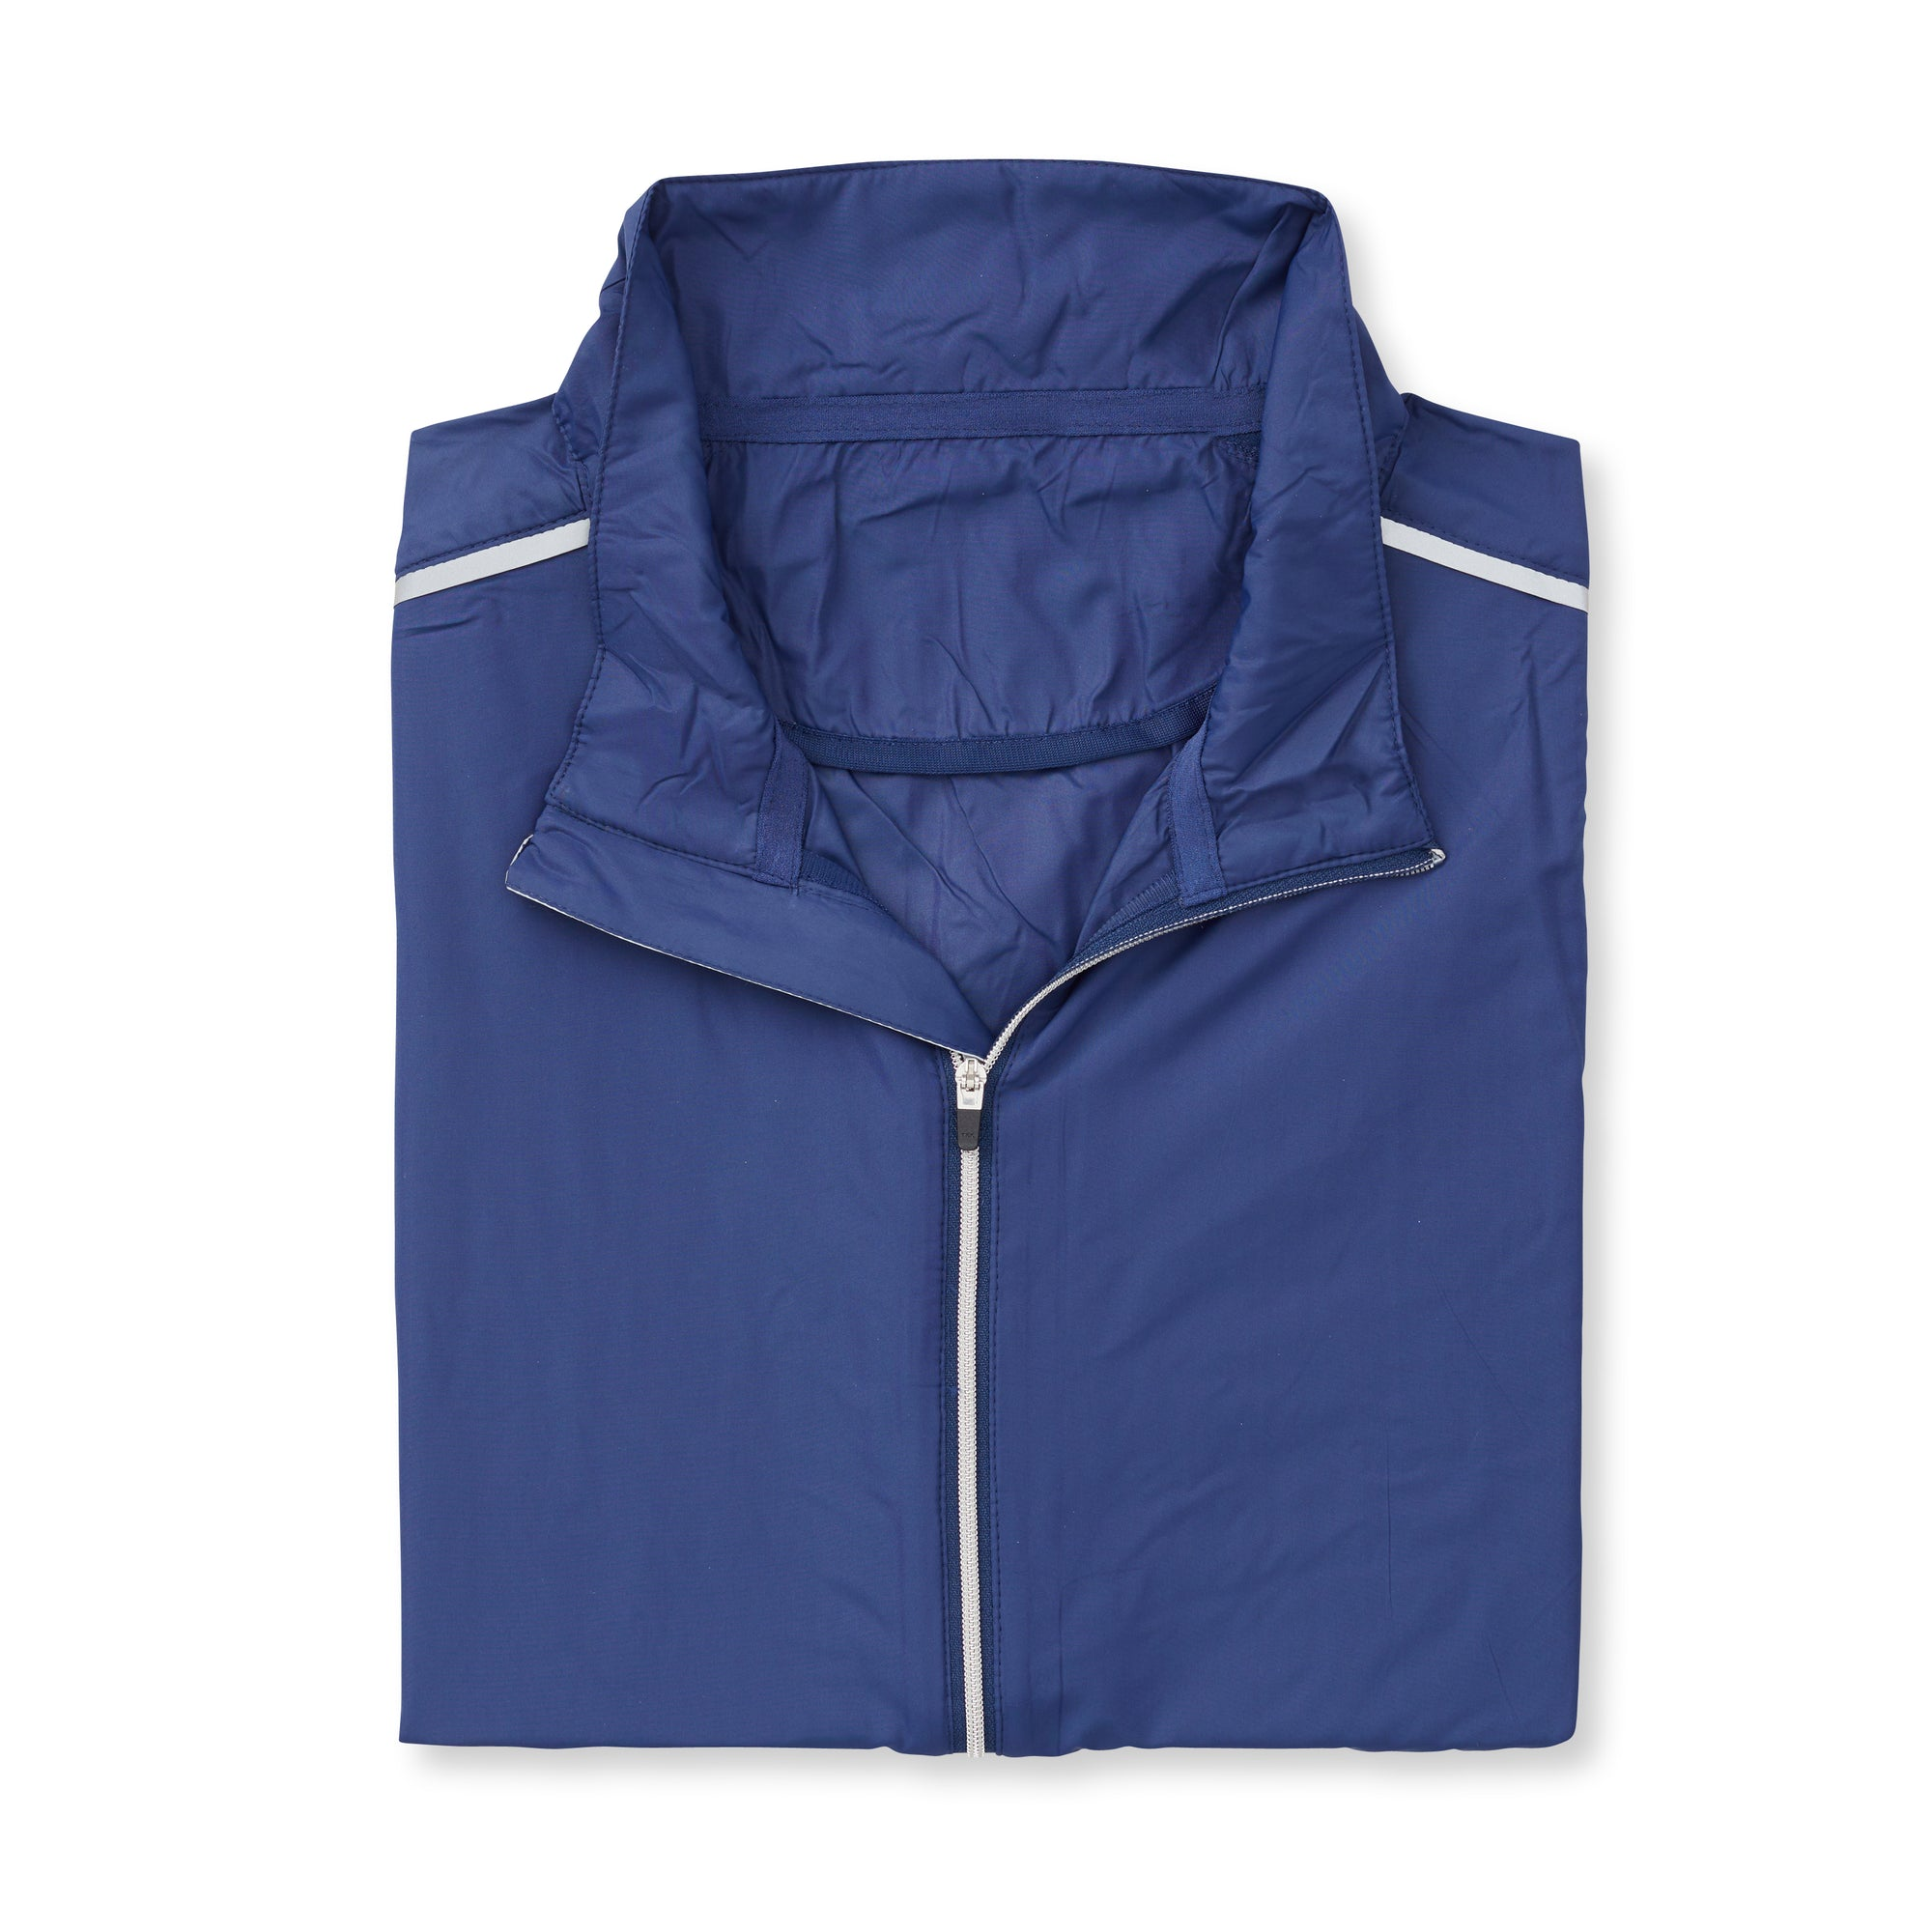 THE AVIATOR FULL ZIP TEC WINDWEAR - Navy IS64905FZ